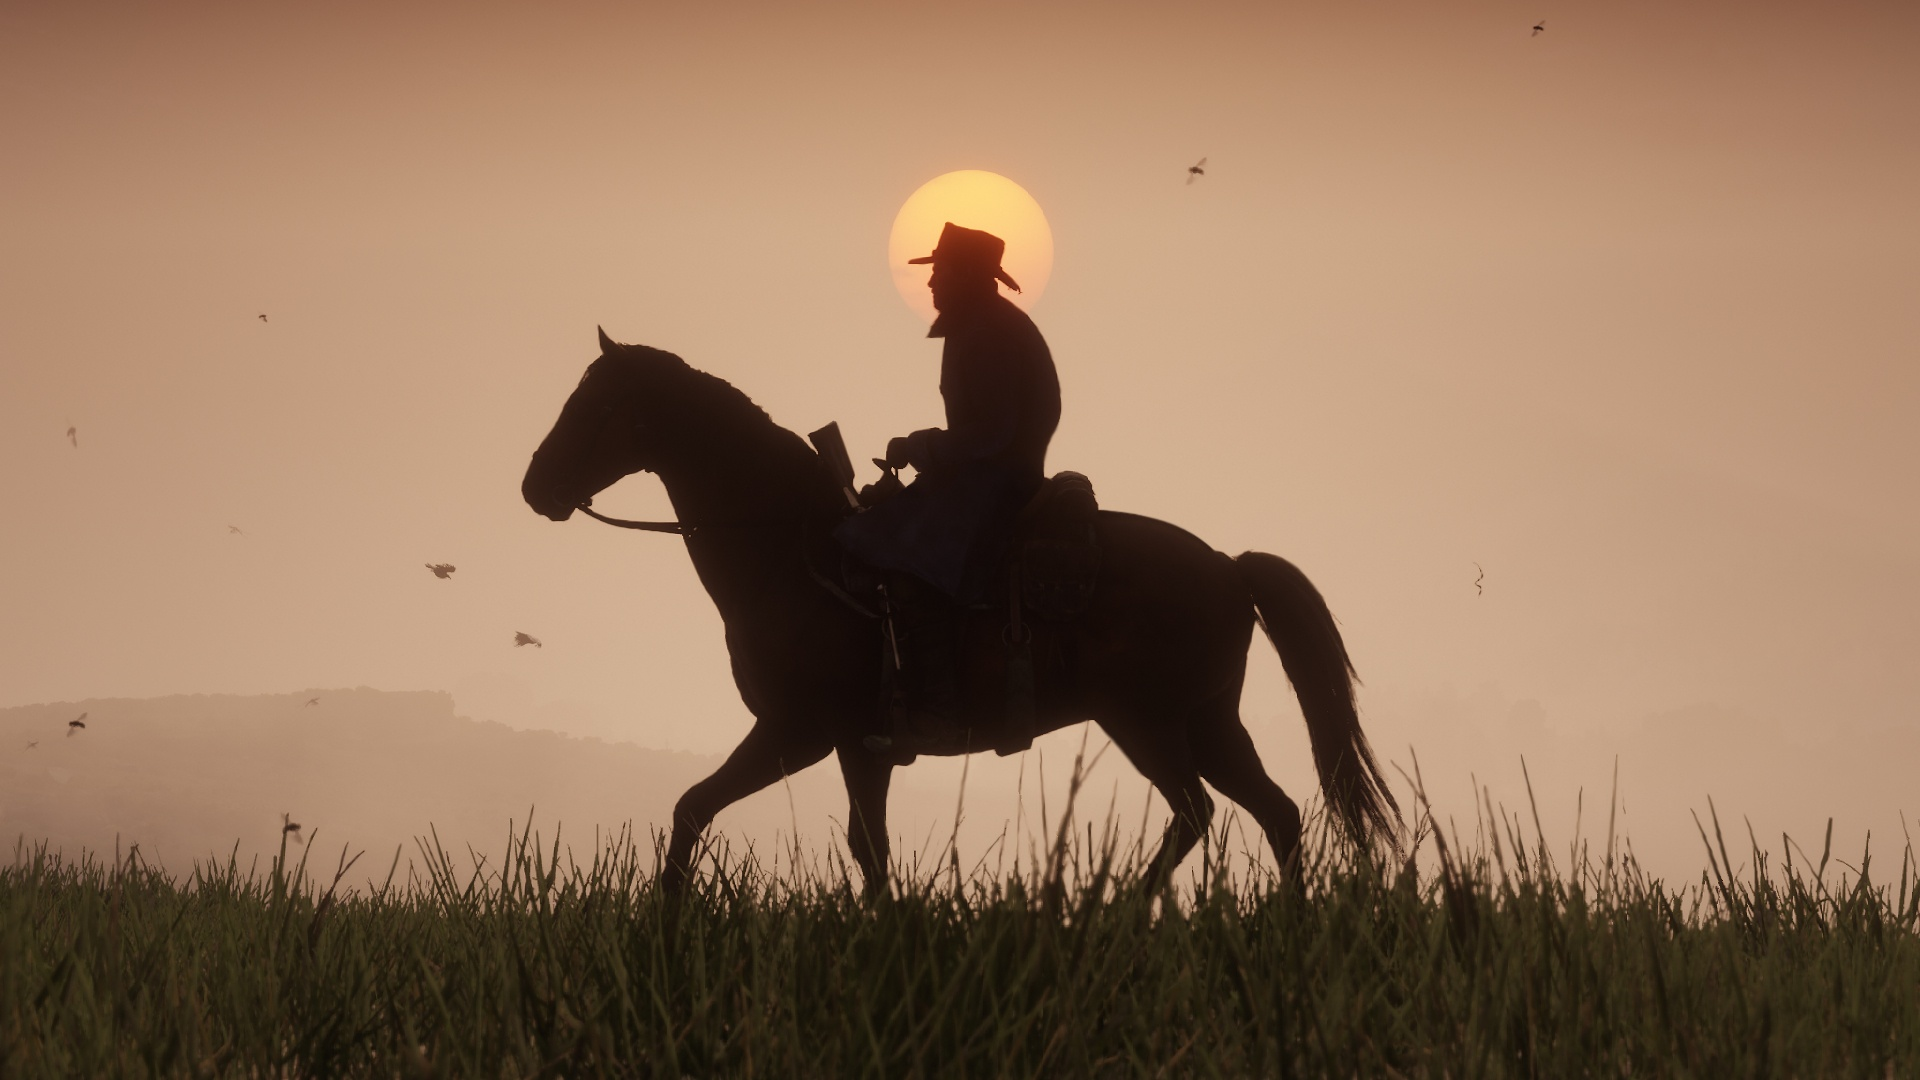 Rockstar Red Dead Redemption 2 horse bonding